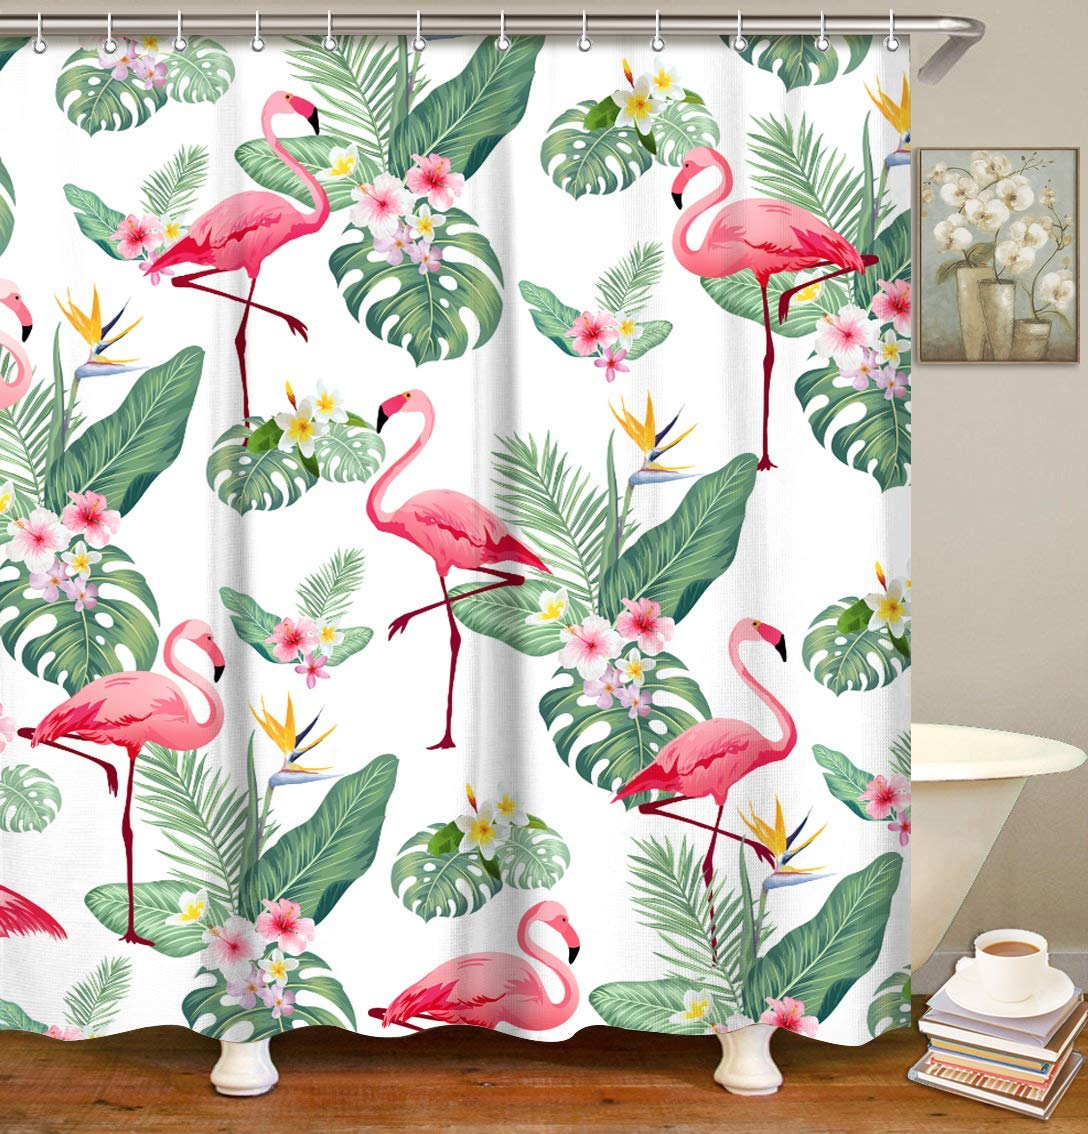 70.8 x 70.8 70.8 x 70.8 Dynabit LIVILAN Floral Shower Curtain Set with 12 Hooks Bath Curtain Fabric Mildew Resistant Privacy Curtain Home Decorations